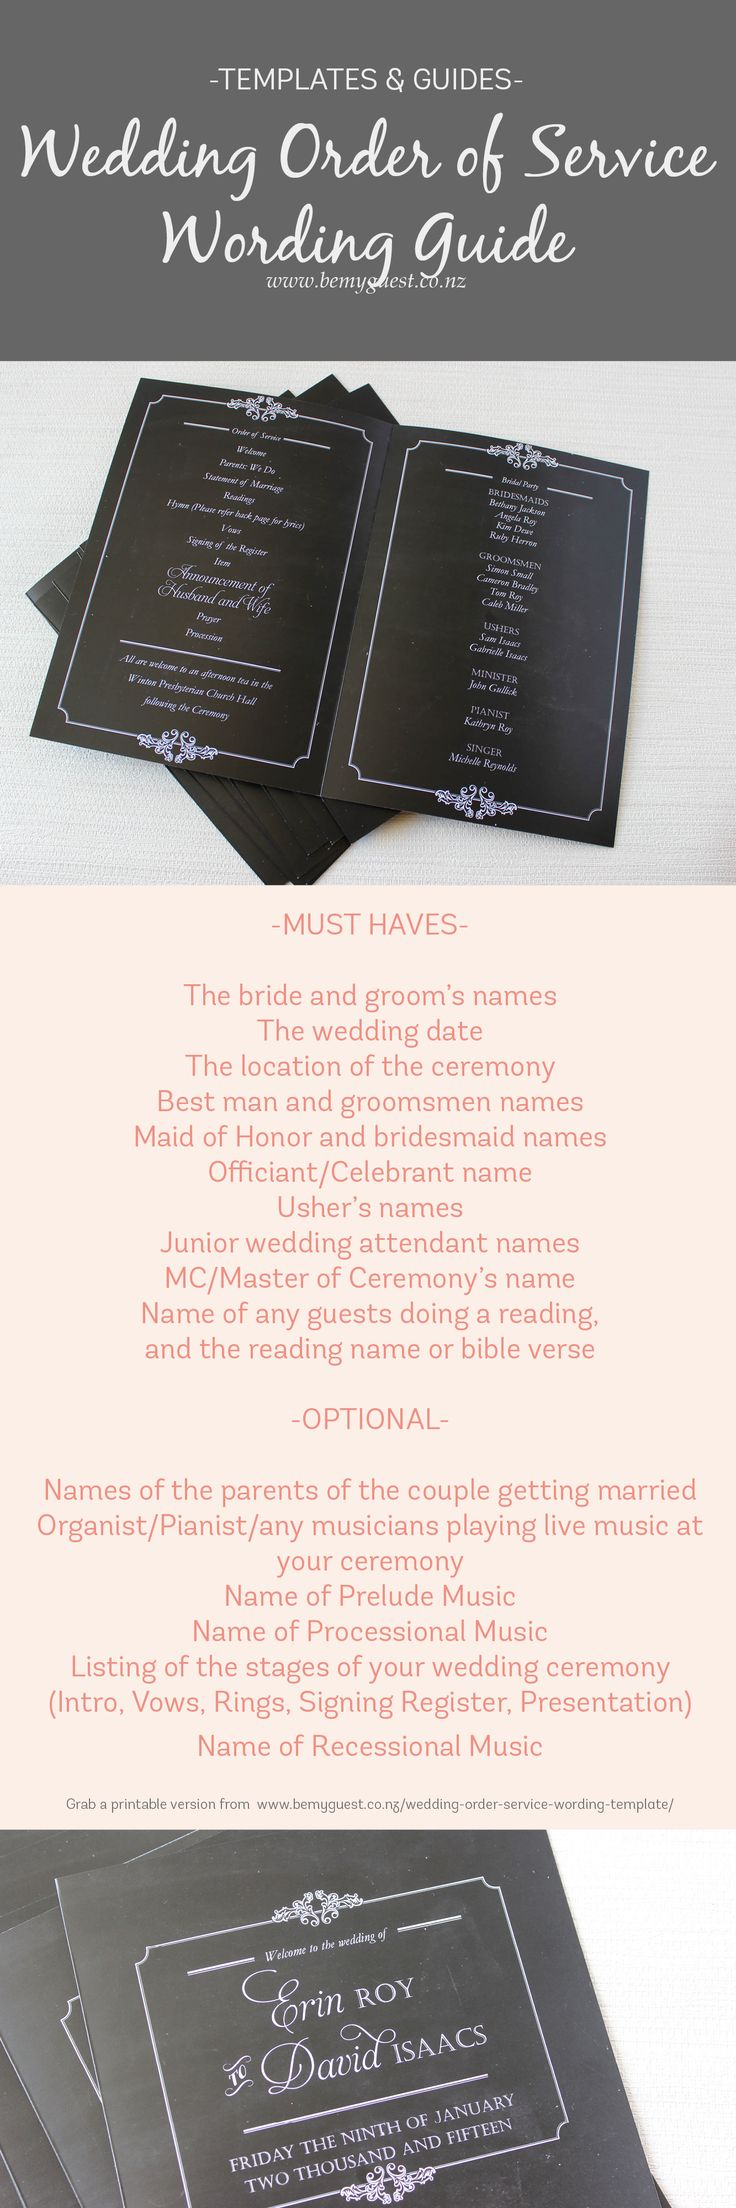 Wedding order of service wording template what to include order of service template wording template for a wedding grab a printable template from httpbemyguestwedding order service wording template stopboris Image collections